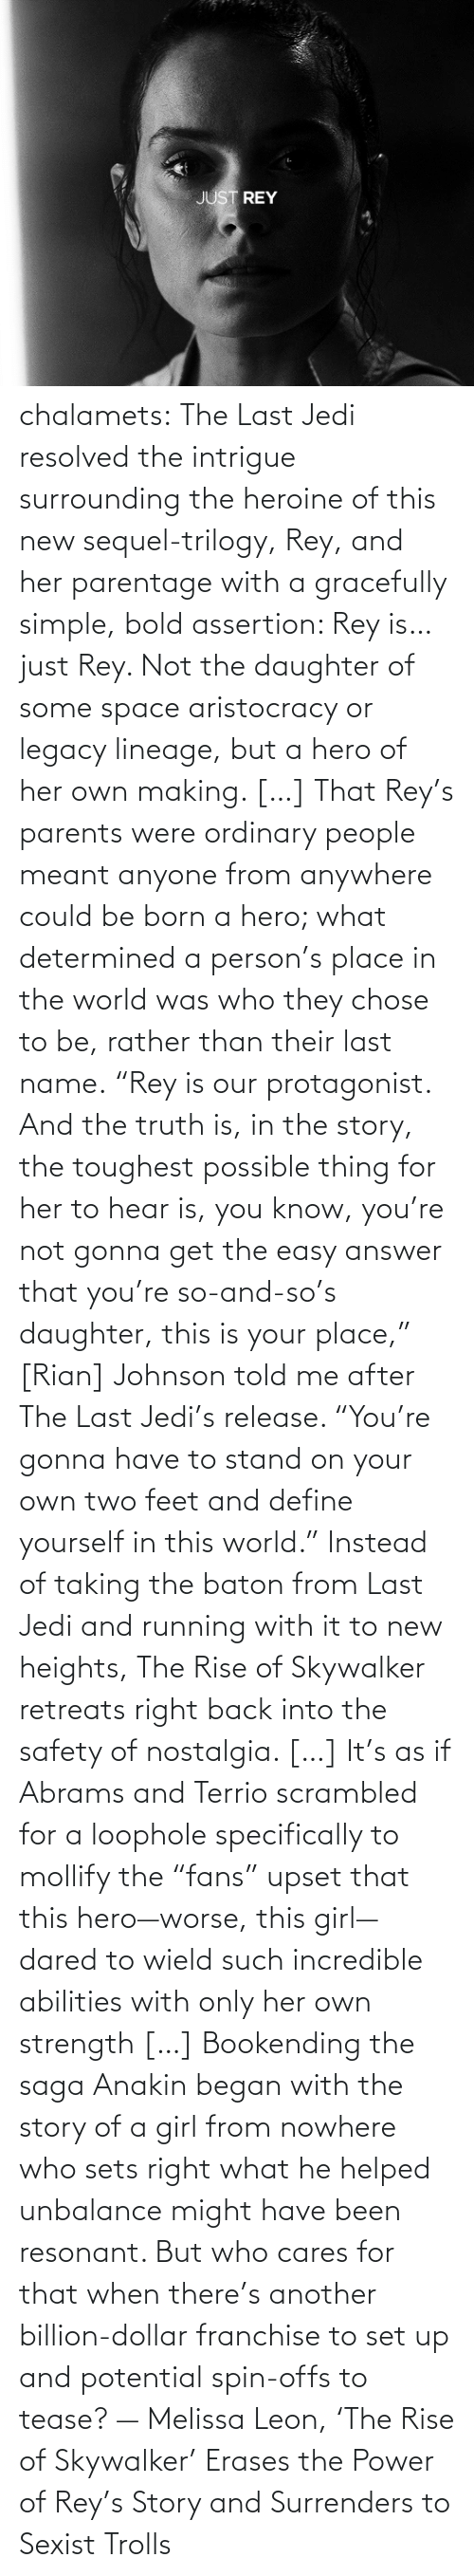 "nostalgia: chalamets:  The Last Jedi resolved the intrigue surrounding the heroine of this new sequel-trilogy, Rey, and her parentage with a gracefully simple, bold assertion: Rey is… just Rey. Not the daughter of some space aristocracy or legacy lineage, but a hero of her own making. […] That Rey's parents were ordinary people meant anyone from anywhere could be born a hero; what determined a person's place in the world was who they chose to be, rather than their last name. ""Rey is our protagonist. And the truth is, in the story, the toughest possible thing for her to hear is, you know, you're not gonna get the easy answer that you're so-and-so's daughter, this is your place,"" [Rian] Johnson told me after The Last Jedi's release. ""You're gonna have to stand on your own two feet and define yourself in this world."" Instead of taking the baton from Last Jedi and running with it to new heights, The Rise of Skywalker retreats right back into the safety of nostalgia. […] It's as if Abrams and Terrio scrambled for a loophole specifically to mollify the ""fans"" upset that this hero—worse, this girl—dared to wield such incredible abilities with only her own strength […] Bookending the saga Anakin began with the story of a girl from nowhere who sets right what he helped unbalance might have been resonant. But who cares for that when there's another billion-dollar franchise to set up and potential spin-offs to tease? — Melissa Leon, 'The Rise of Skywalker' Erases the Power of Rey's Story and Surrenders to Sexist Trolls"